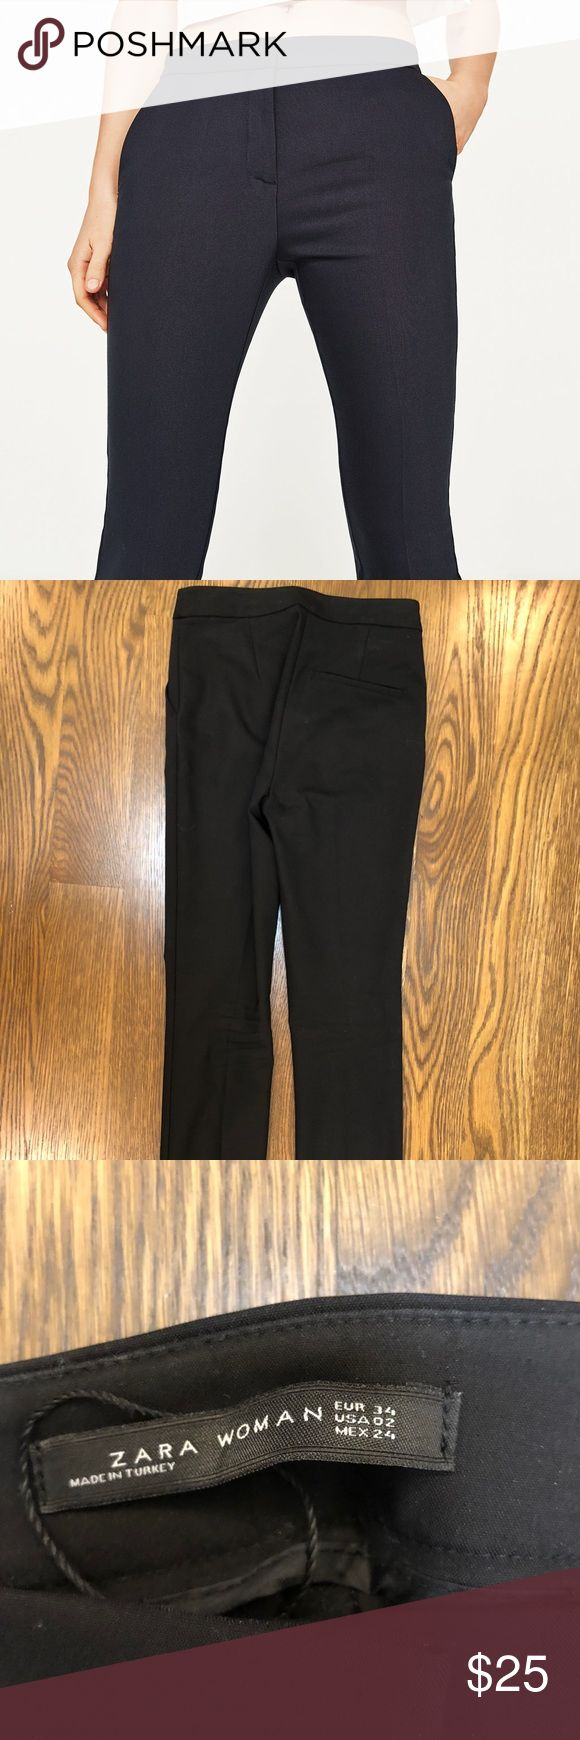 Zara Woman black slim trouser size 2 Slim cut straight leg black trousers to ankle. Great pant for work or night out with a sexy top. Worn only once. Zara Pants Trousers